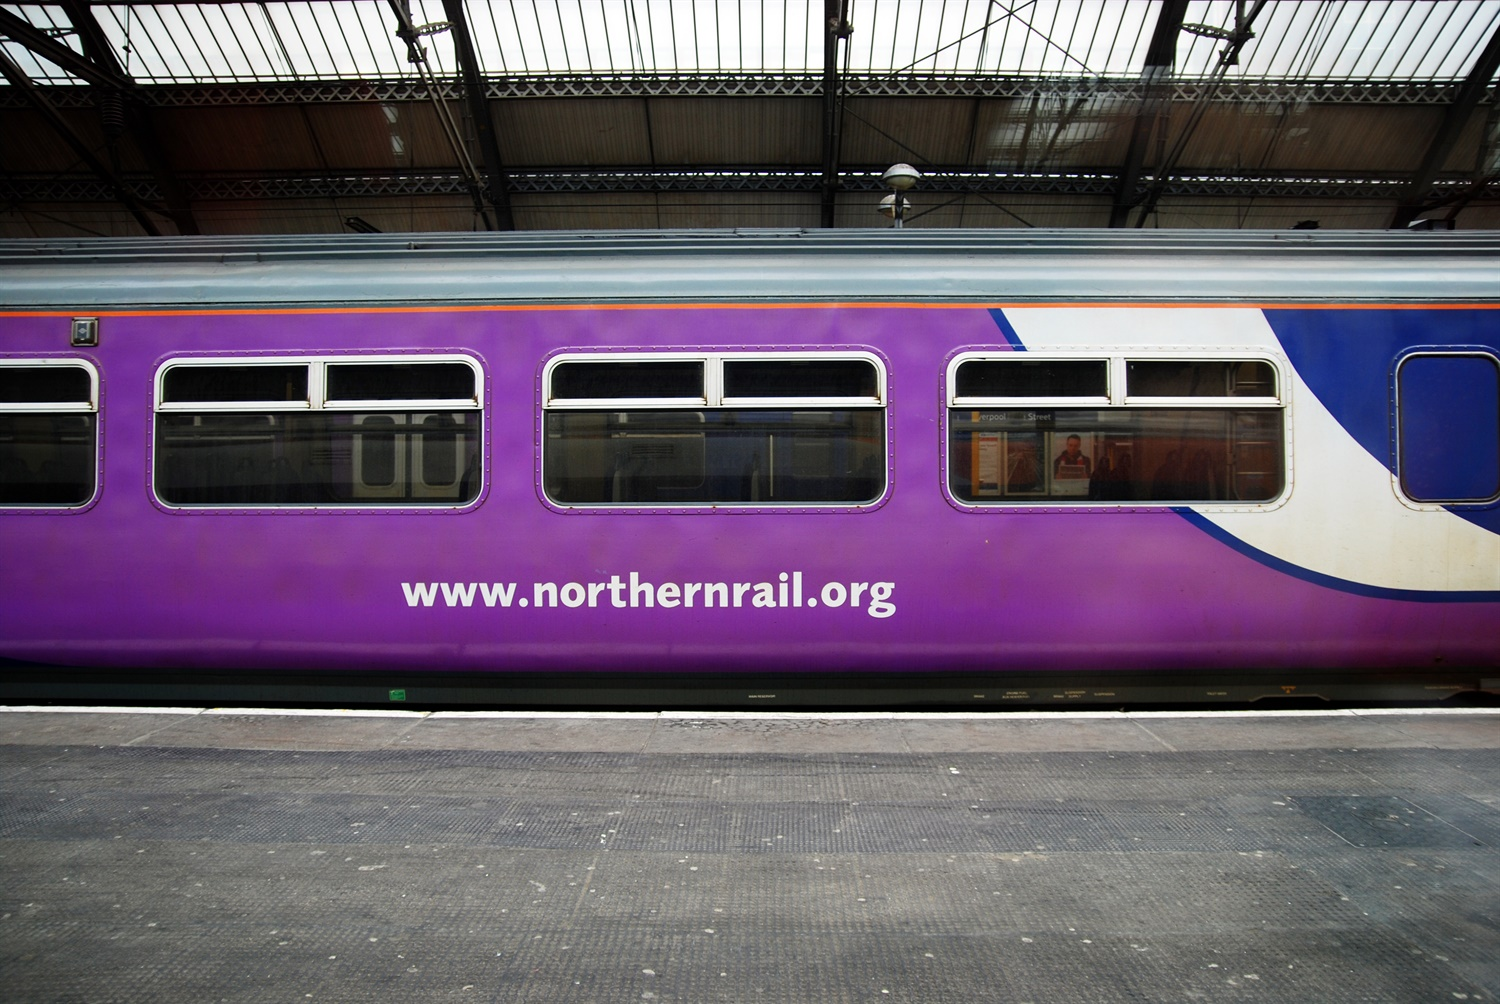 Strikes suspended as Northern and RMT reach an agreement in bitter guards dispute